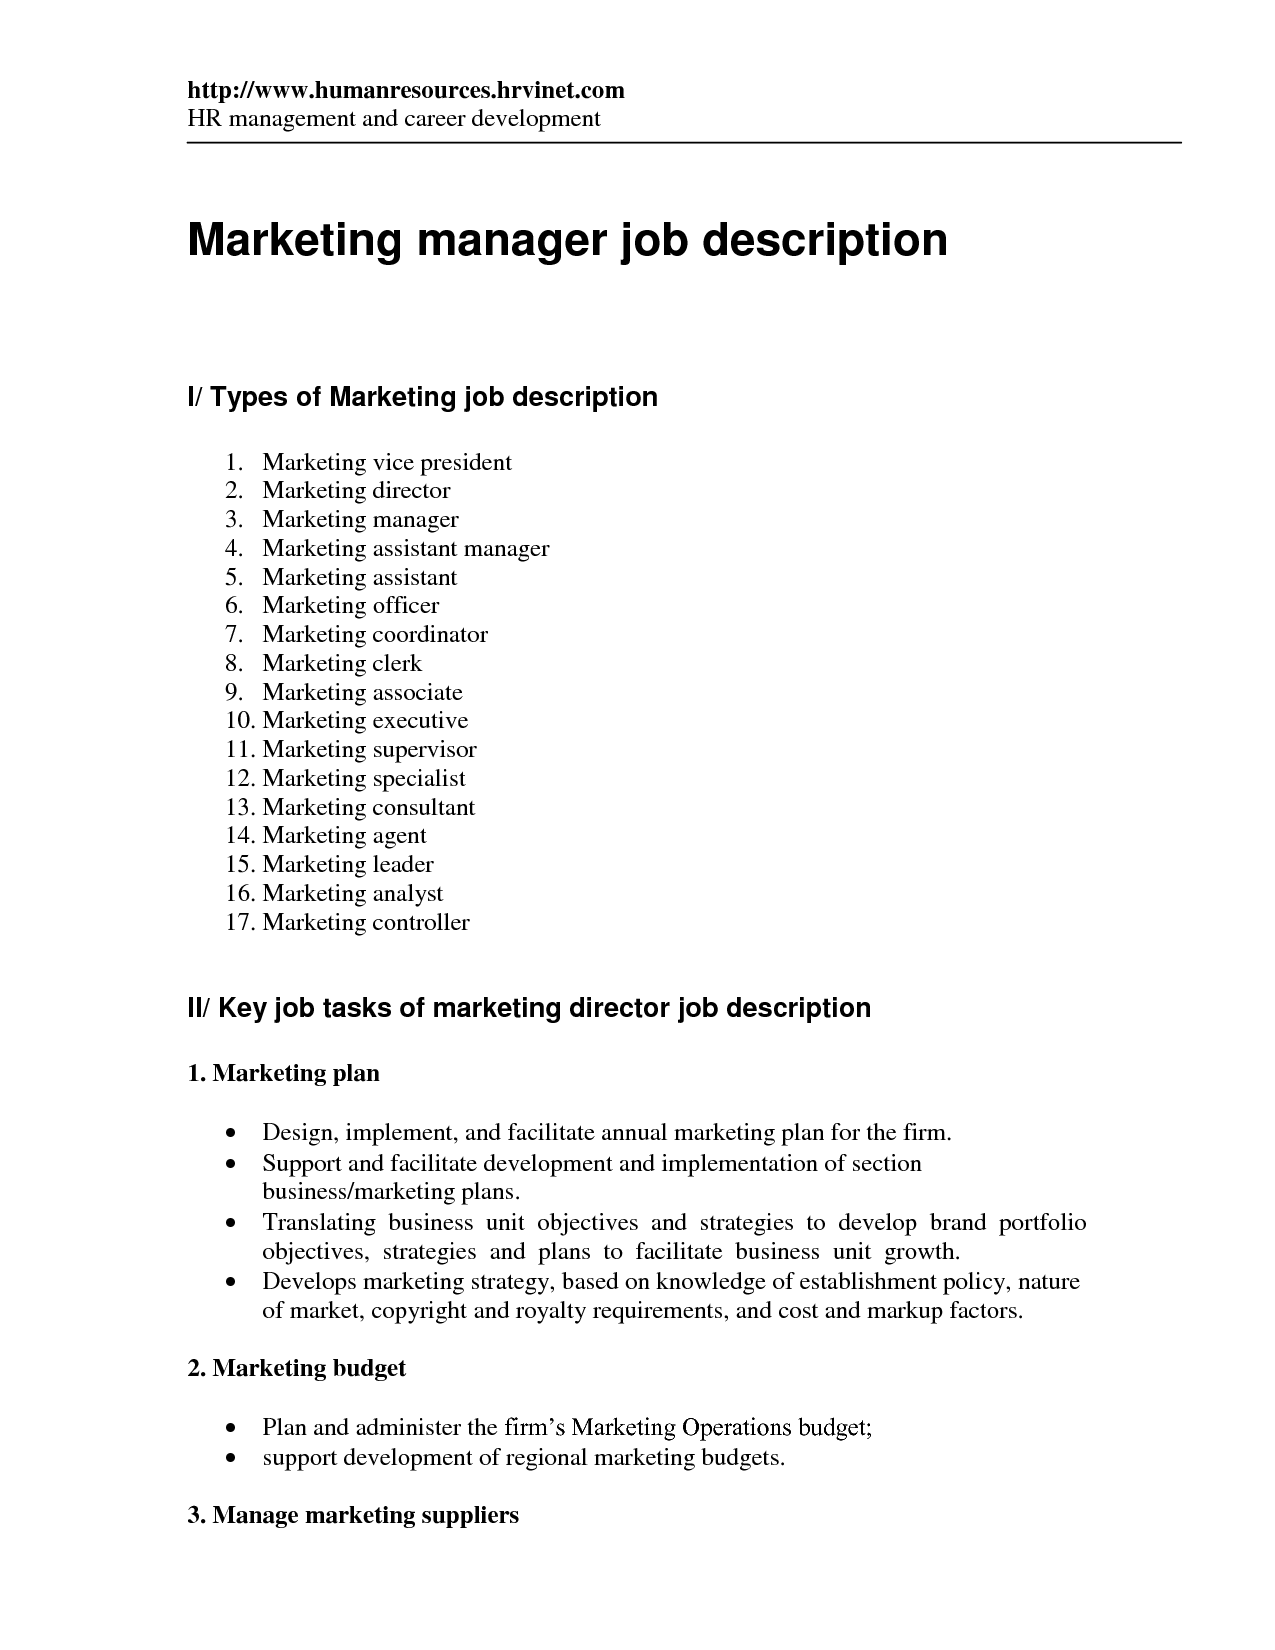 mechanic resume job description resume samples writing mechanic resume job description diesel technician mechanic job description sample marketing manager job description marketing director